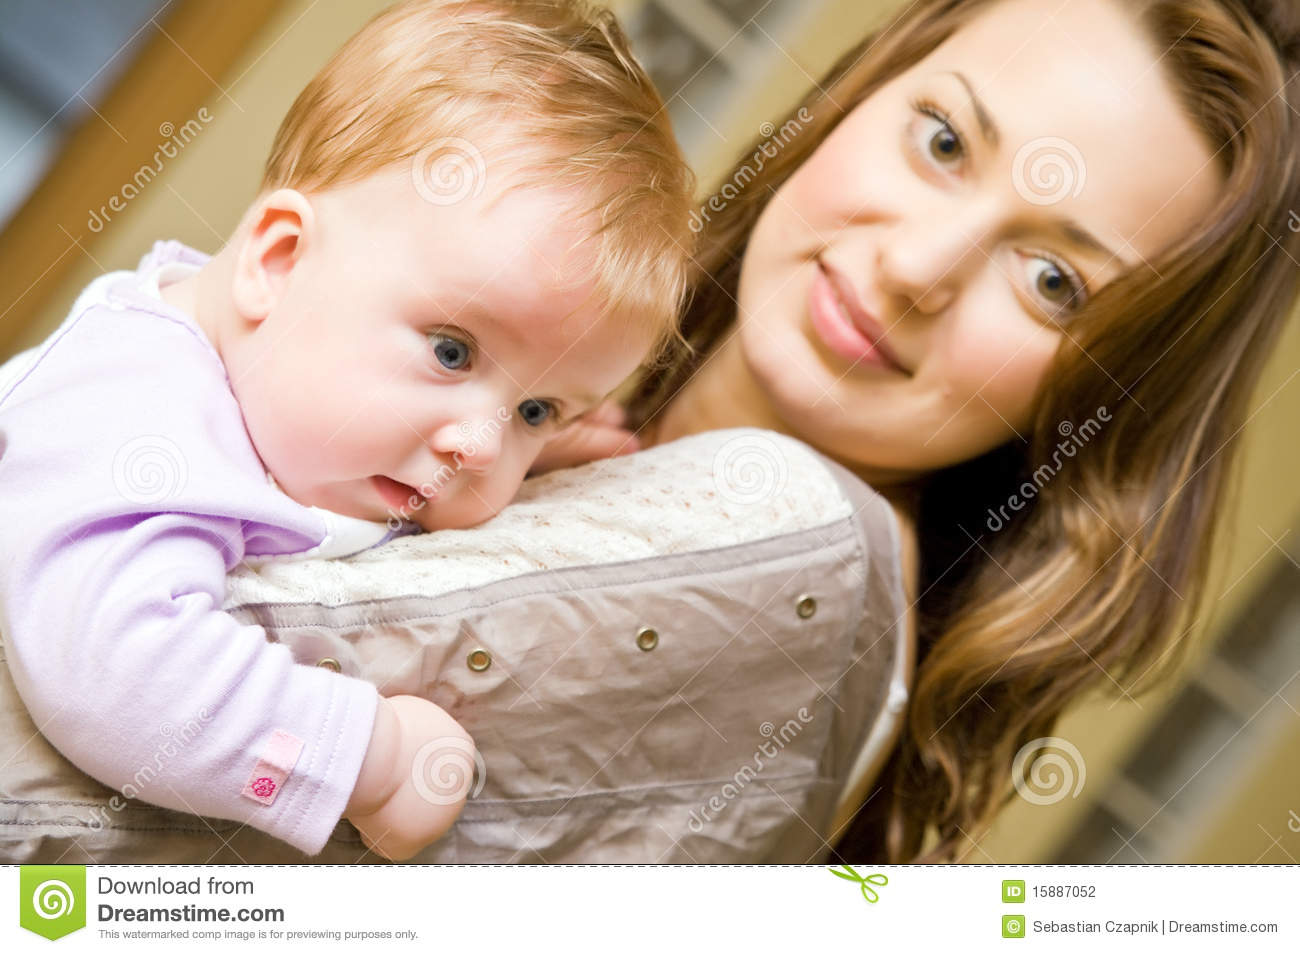 Woman Holding Baby Stock Photography - Image: 15887052